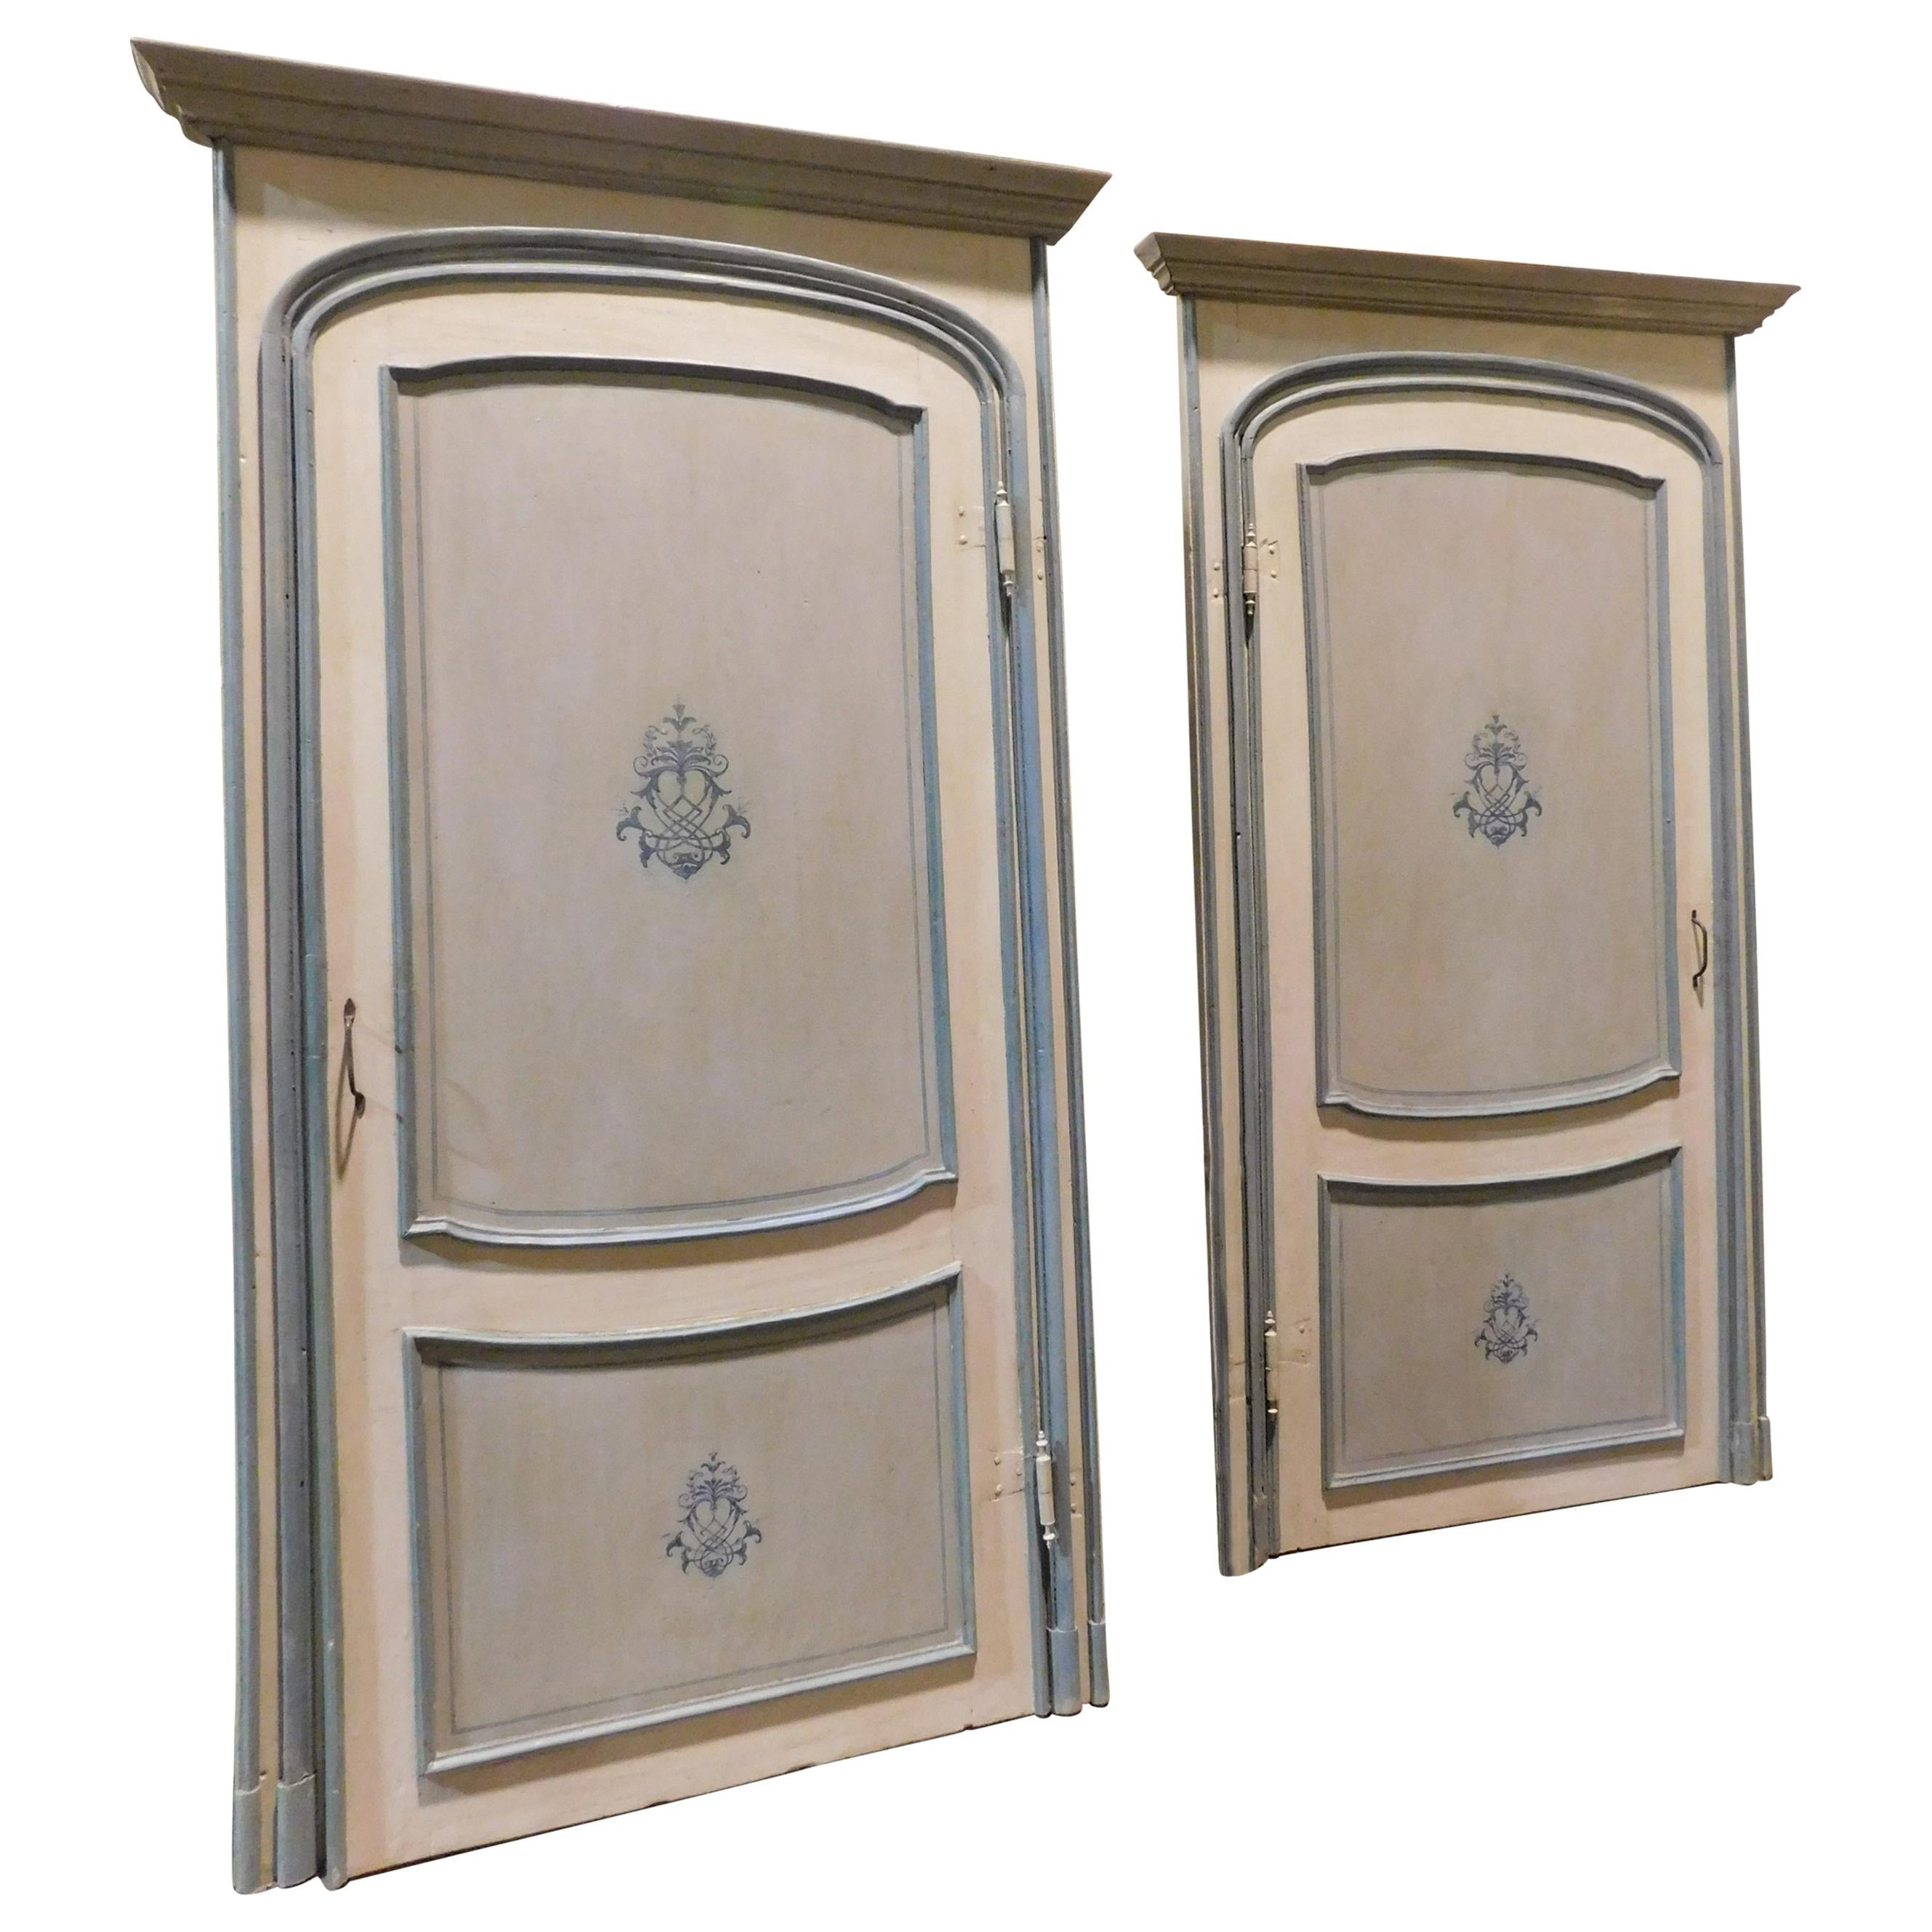 Pair of Antique Doors Painted with Frame, Blue and Gray with Frame, 1700, Italy